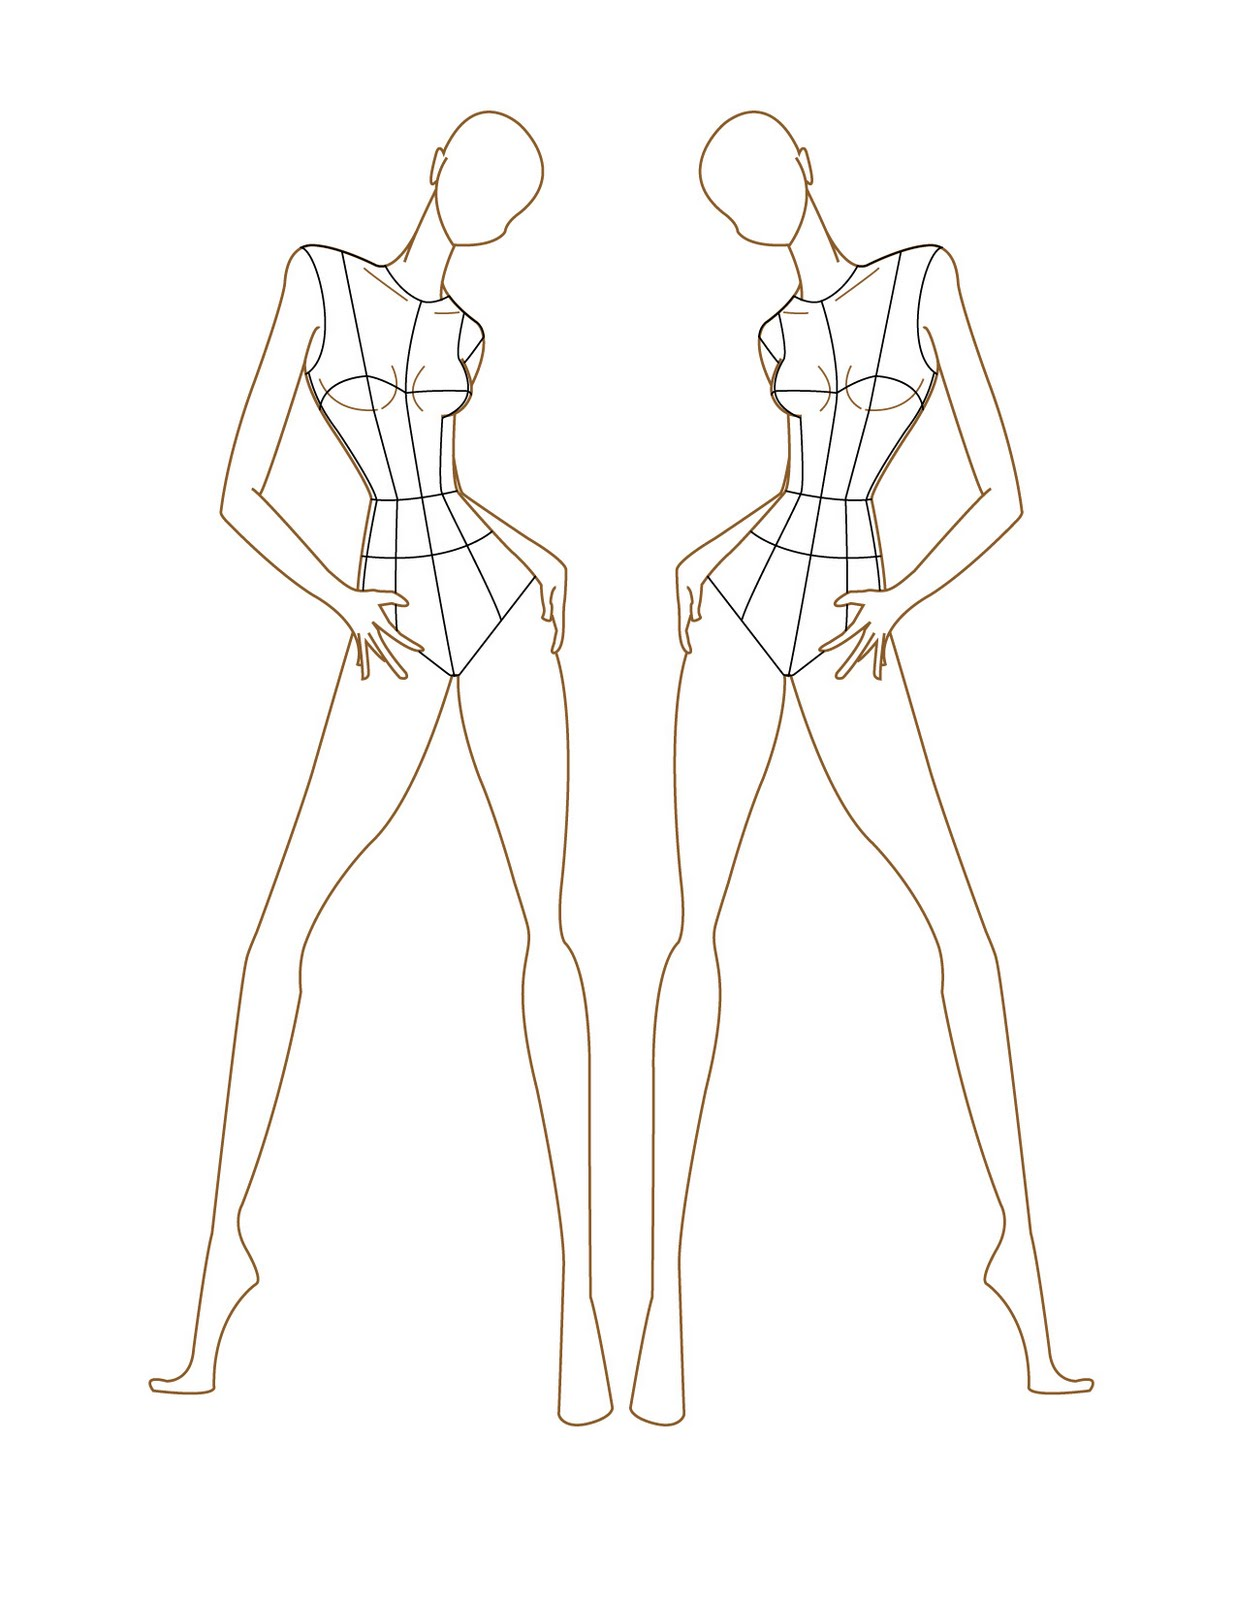 Female fashion templates